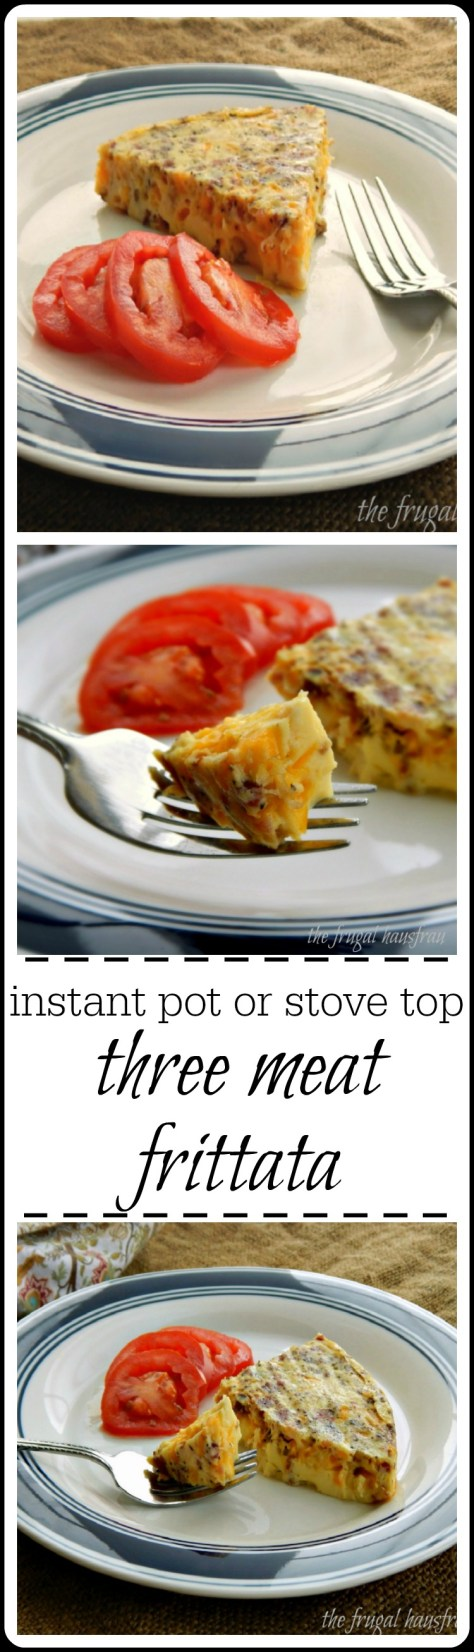 Frittatas - this one's great either Instant Pot or on the Stove! Great way to use any leftovers in the fridge!